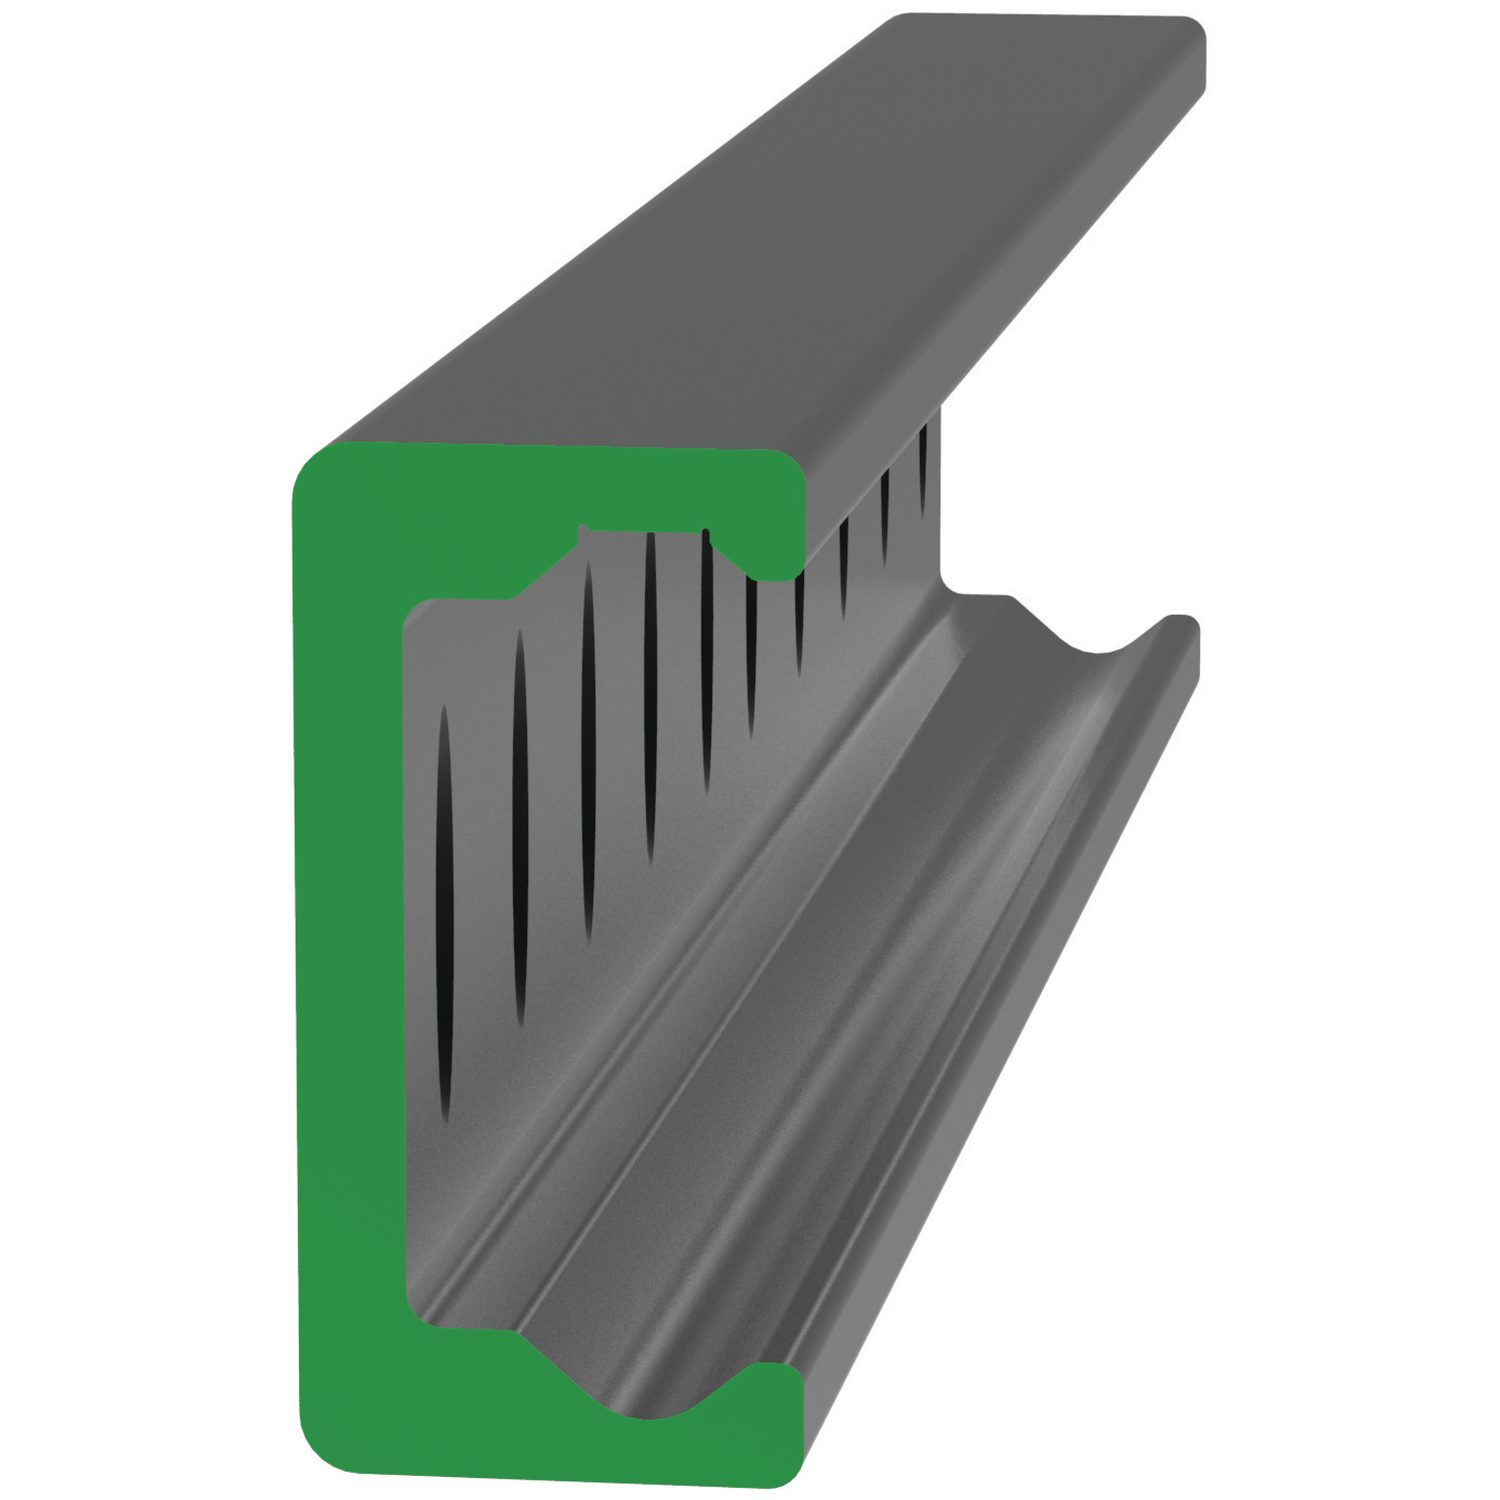 Product L1943.KL, Heavy Duty K Rail counterbored holes /